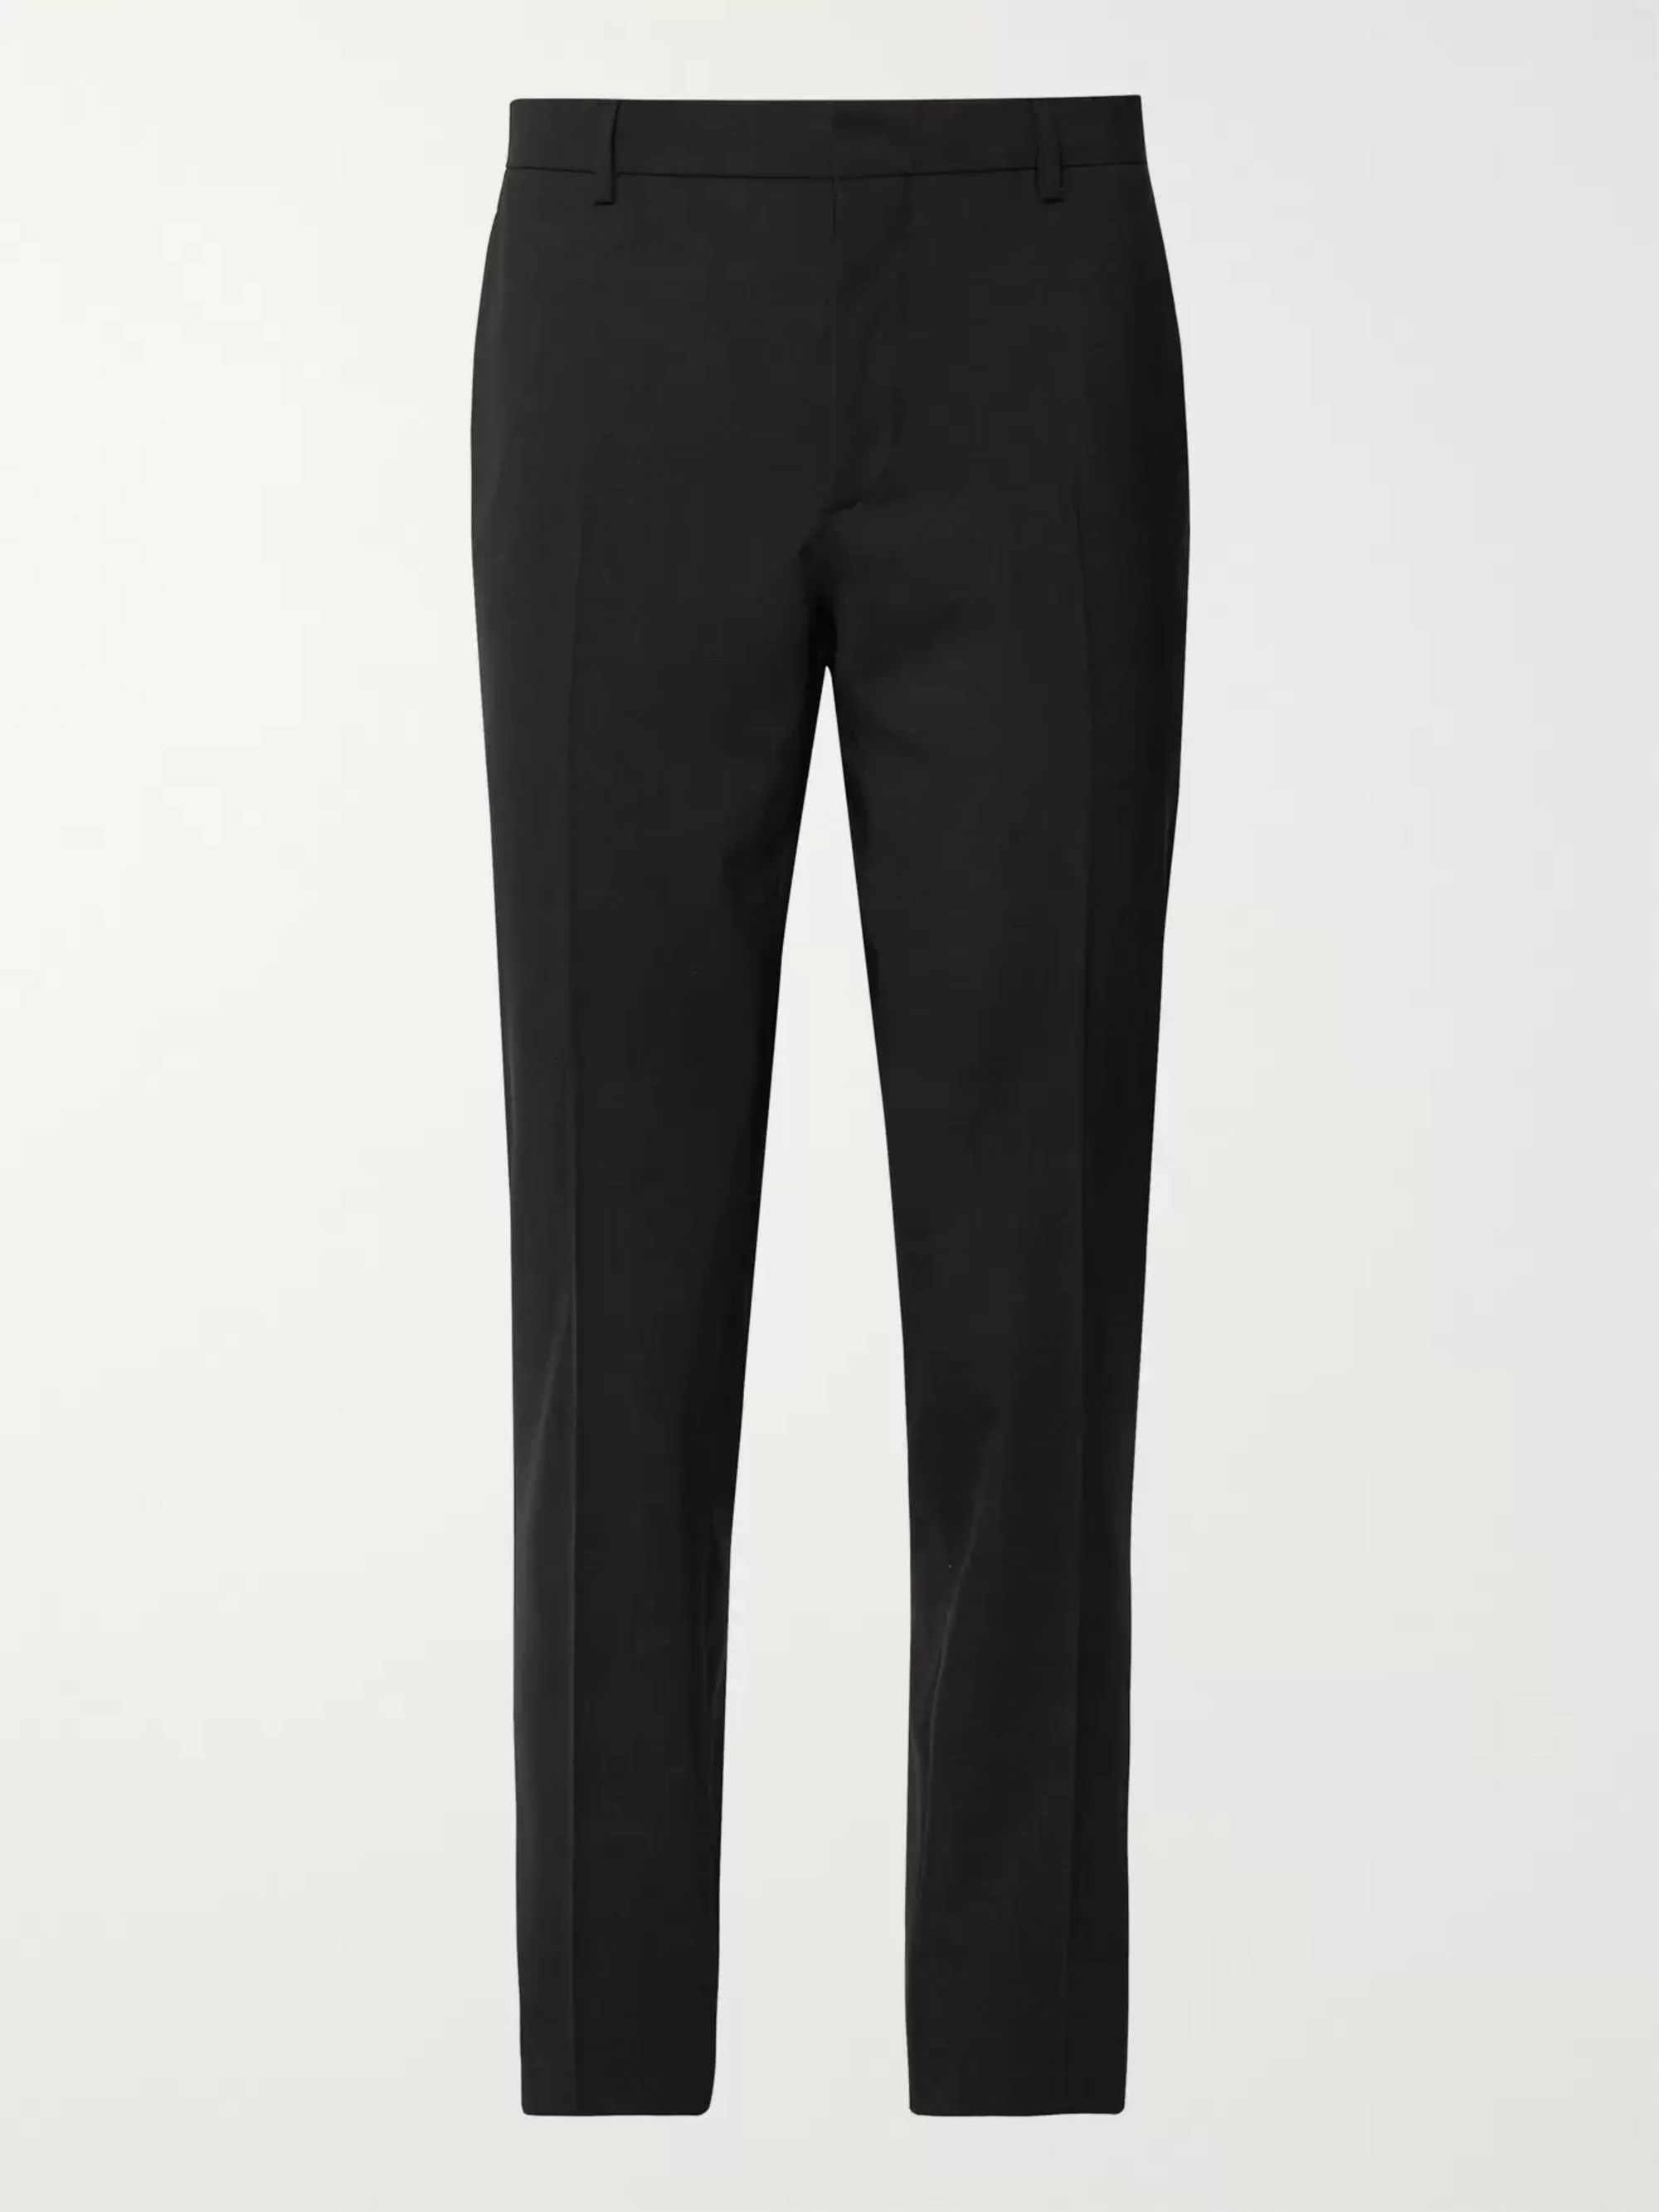 Prada Tan Slim-Fit Stretch-Virgin Wool Trousers